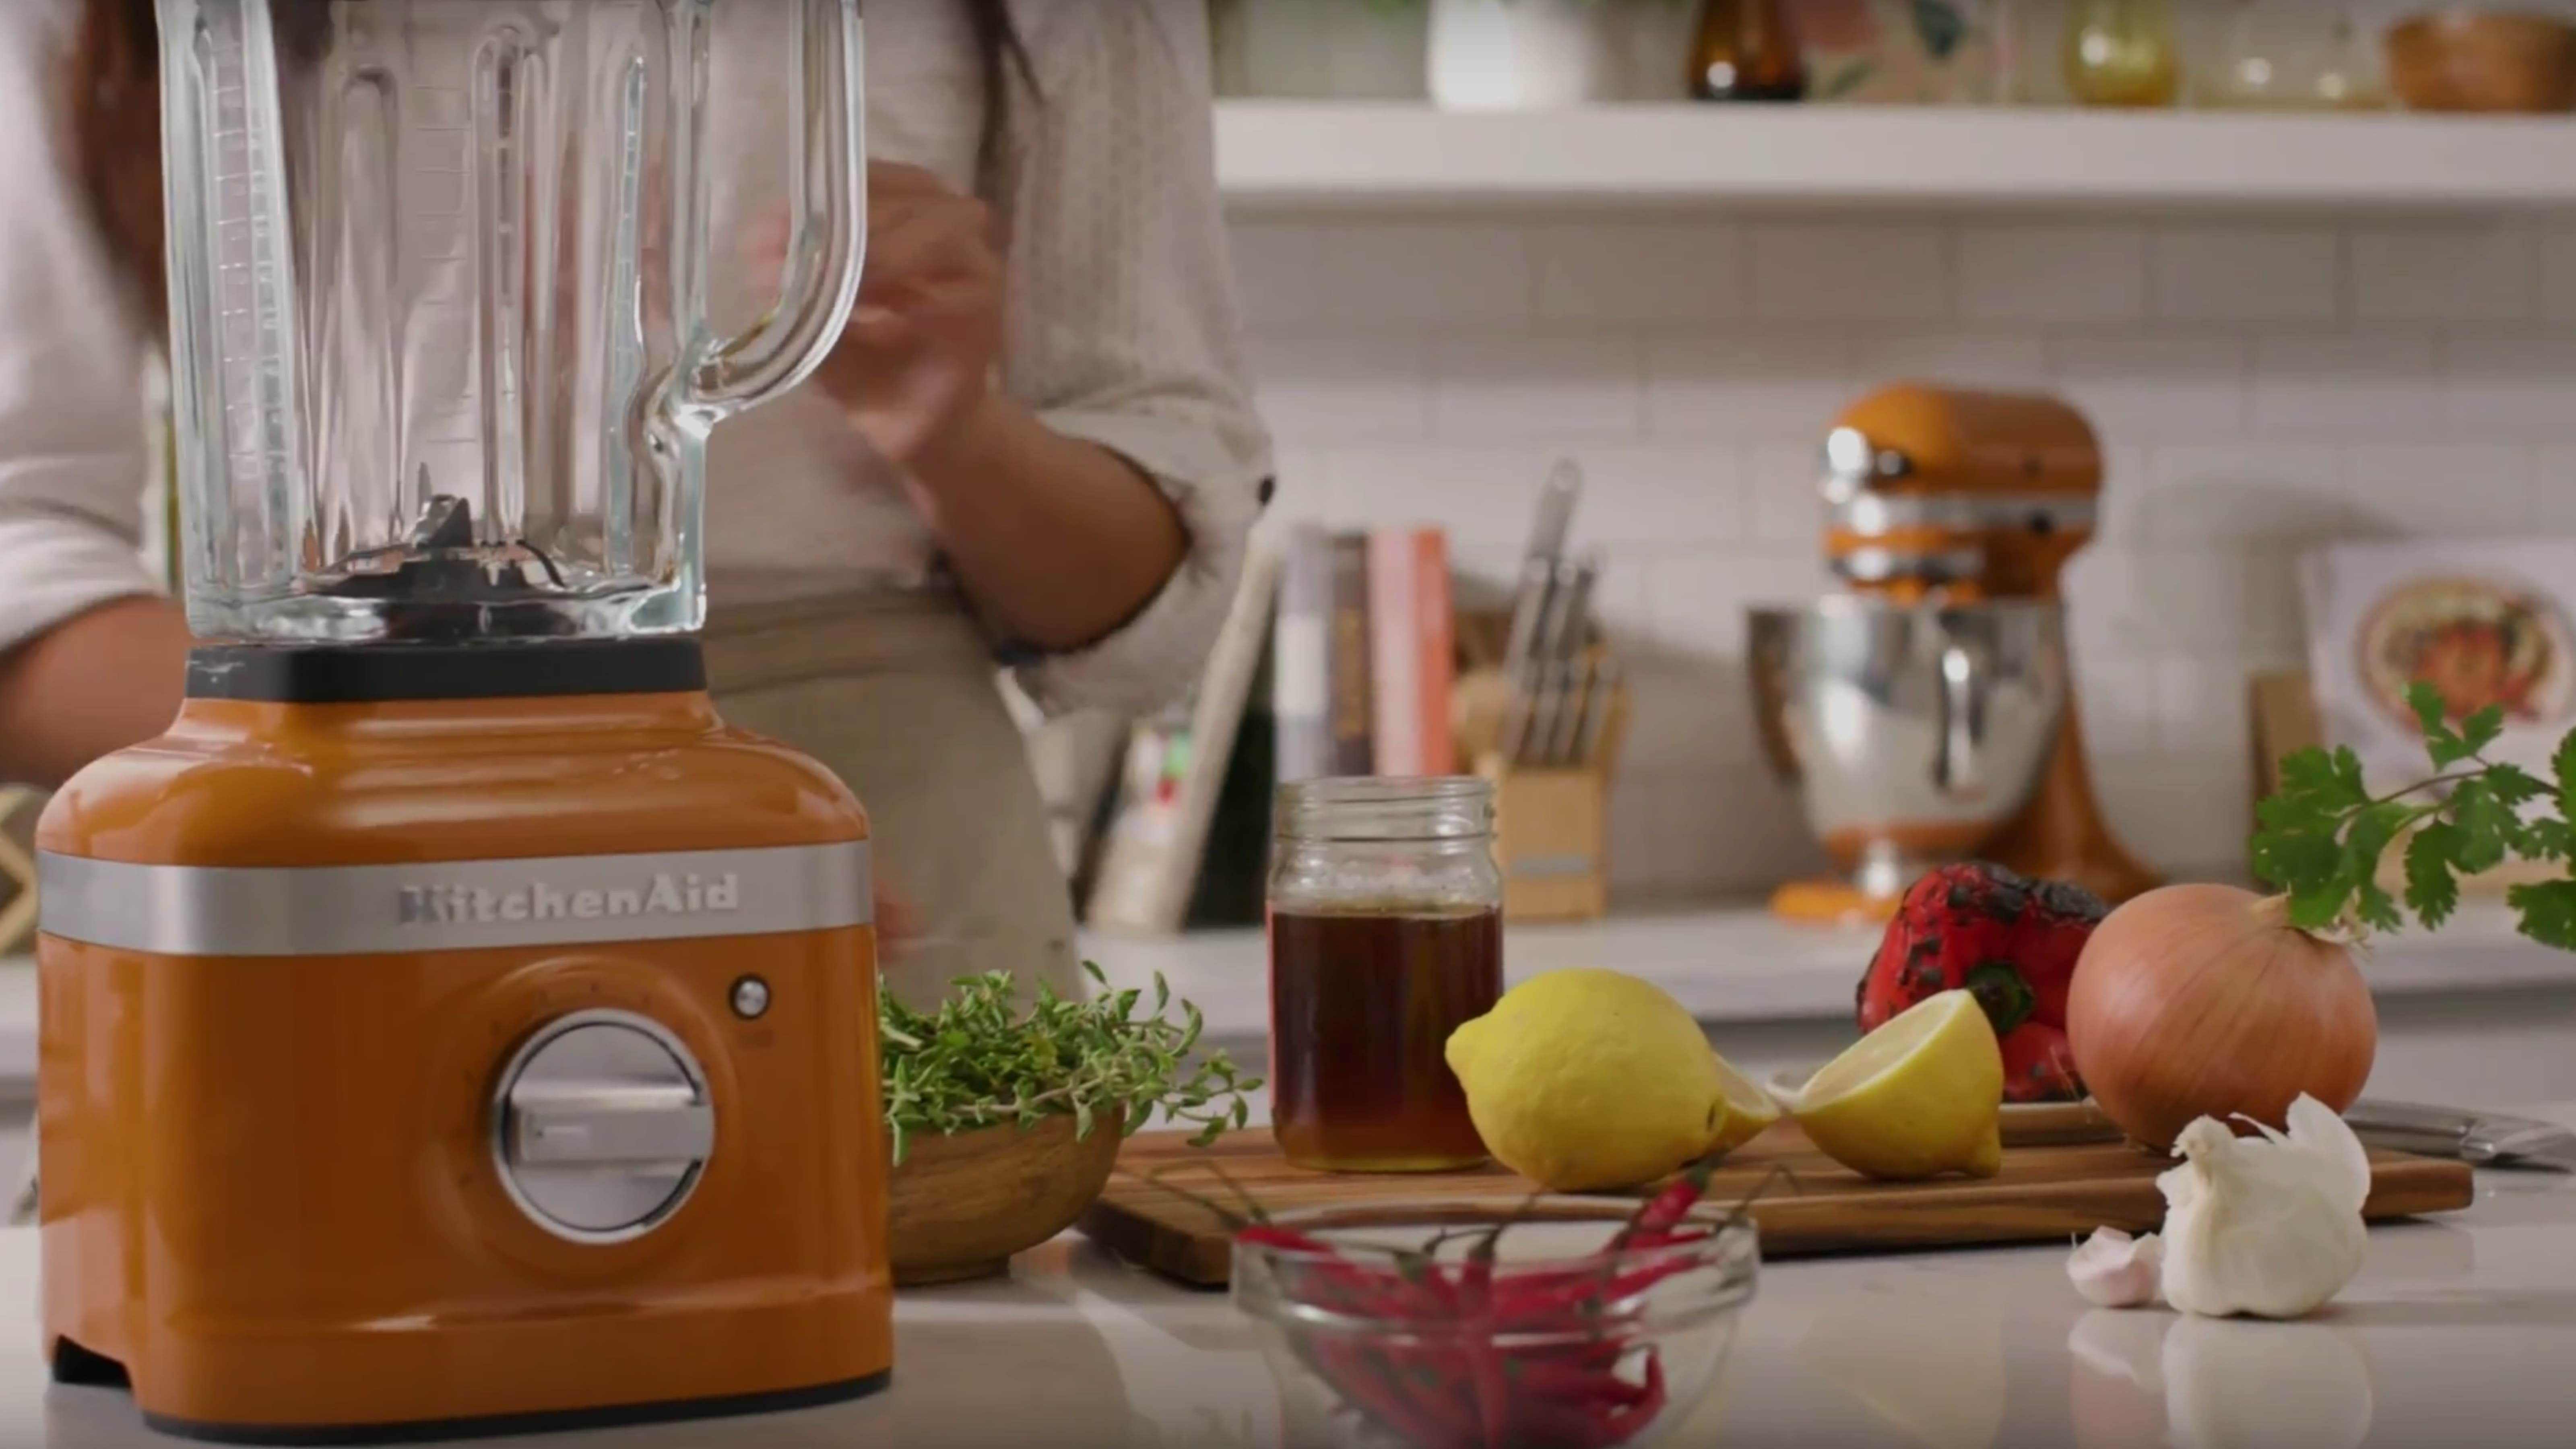 Blender and Mixer in Honey color of the year